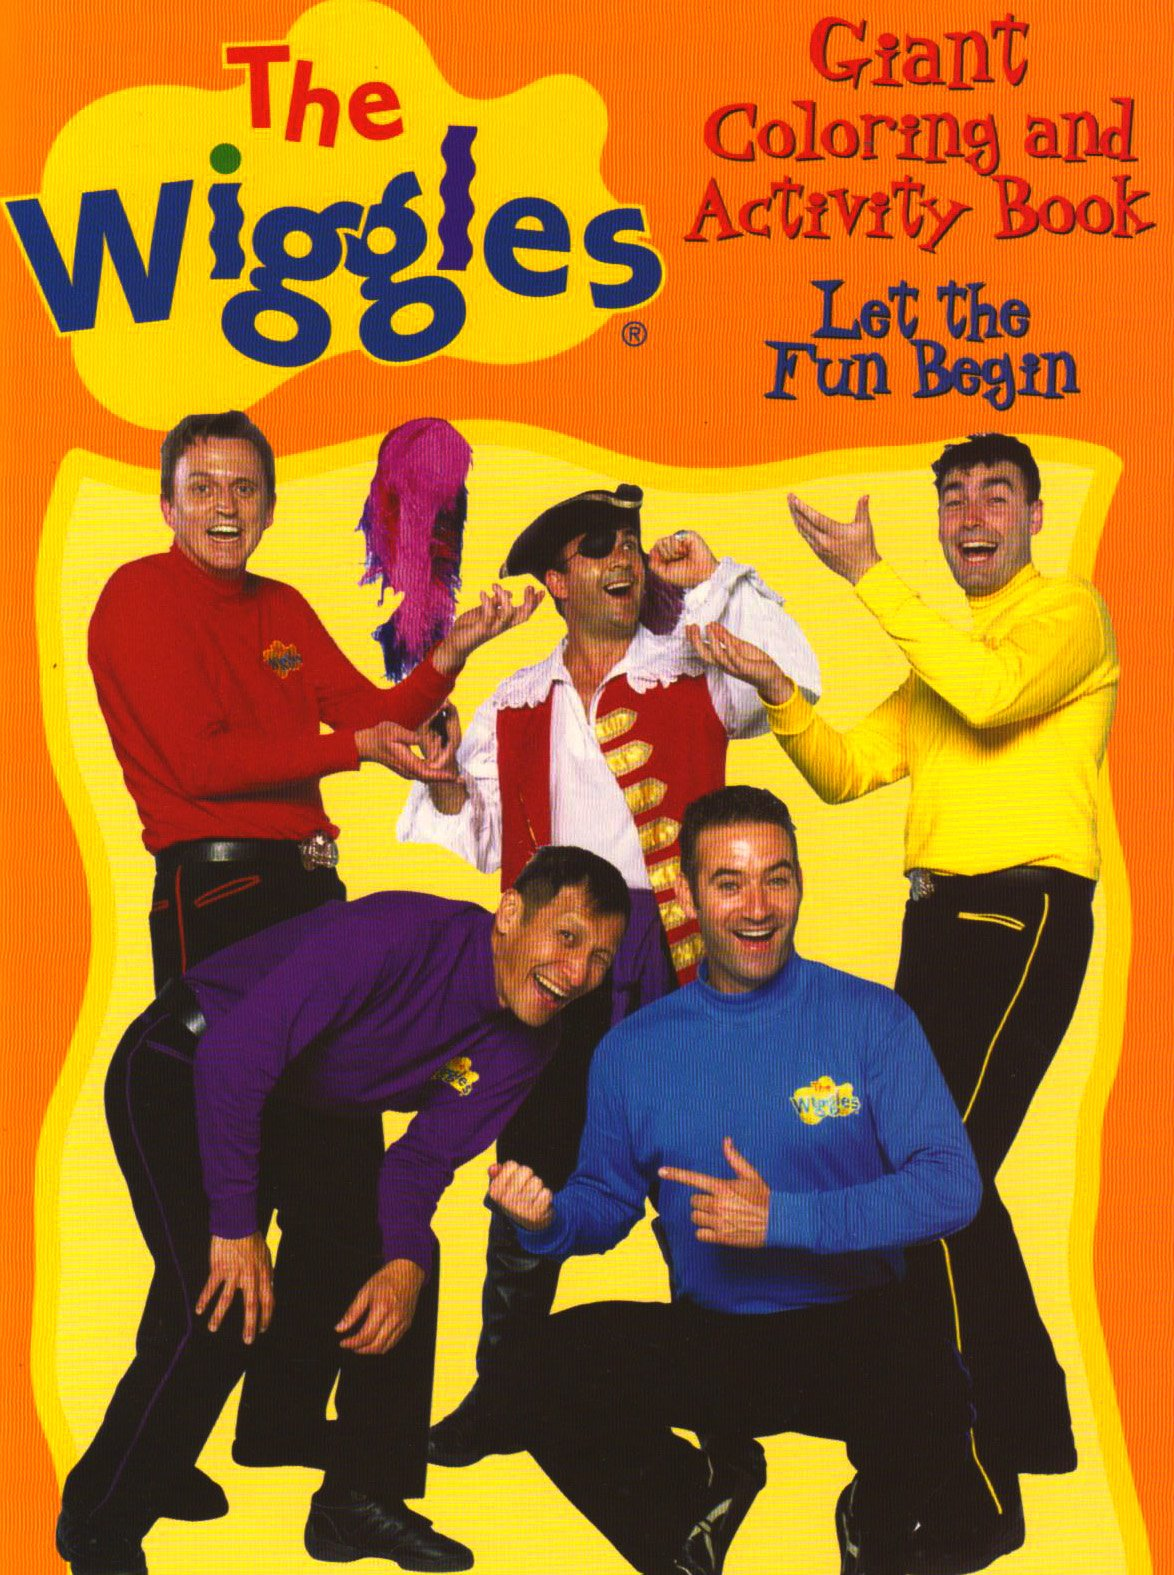 THE WIGGLES GIANT COLORING ACTIVITY BOOKS